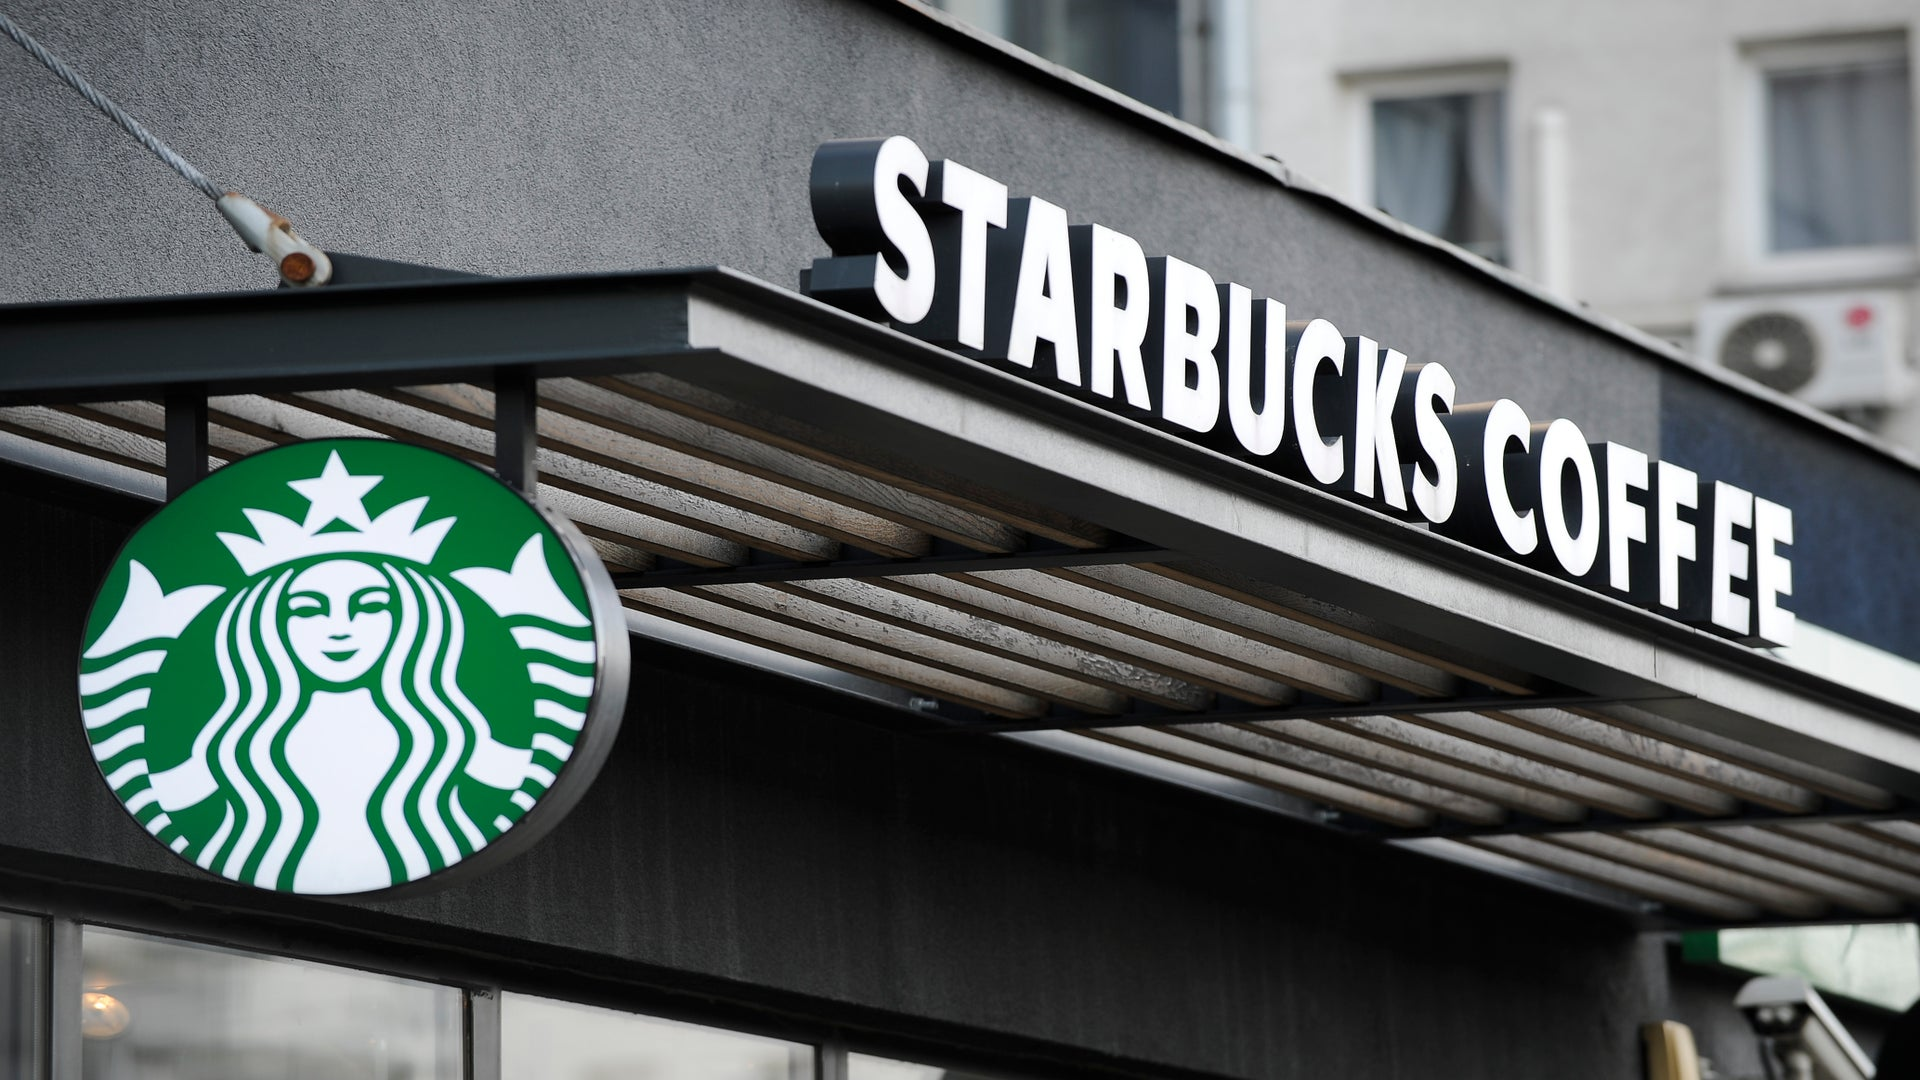 The Quick Read: Starbucks Will Close 8,000 Locations May 29 For Racial-Bias Training